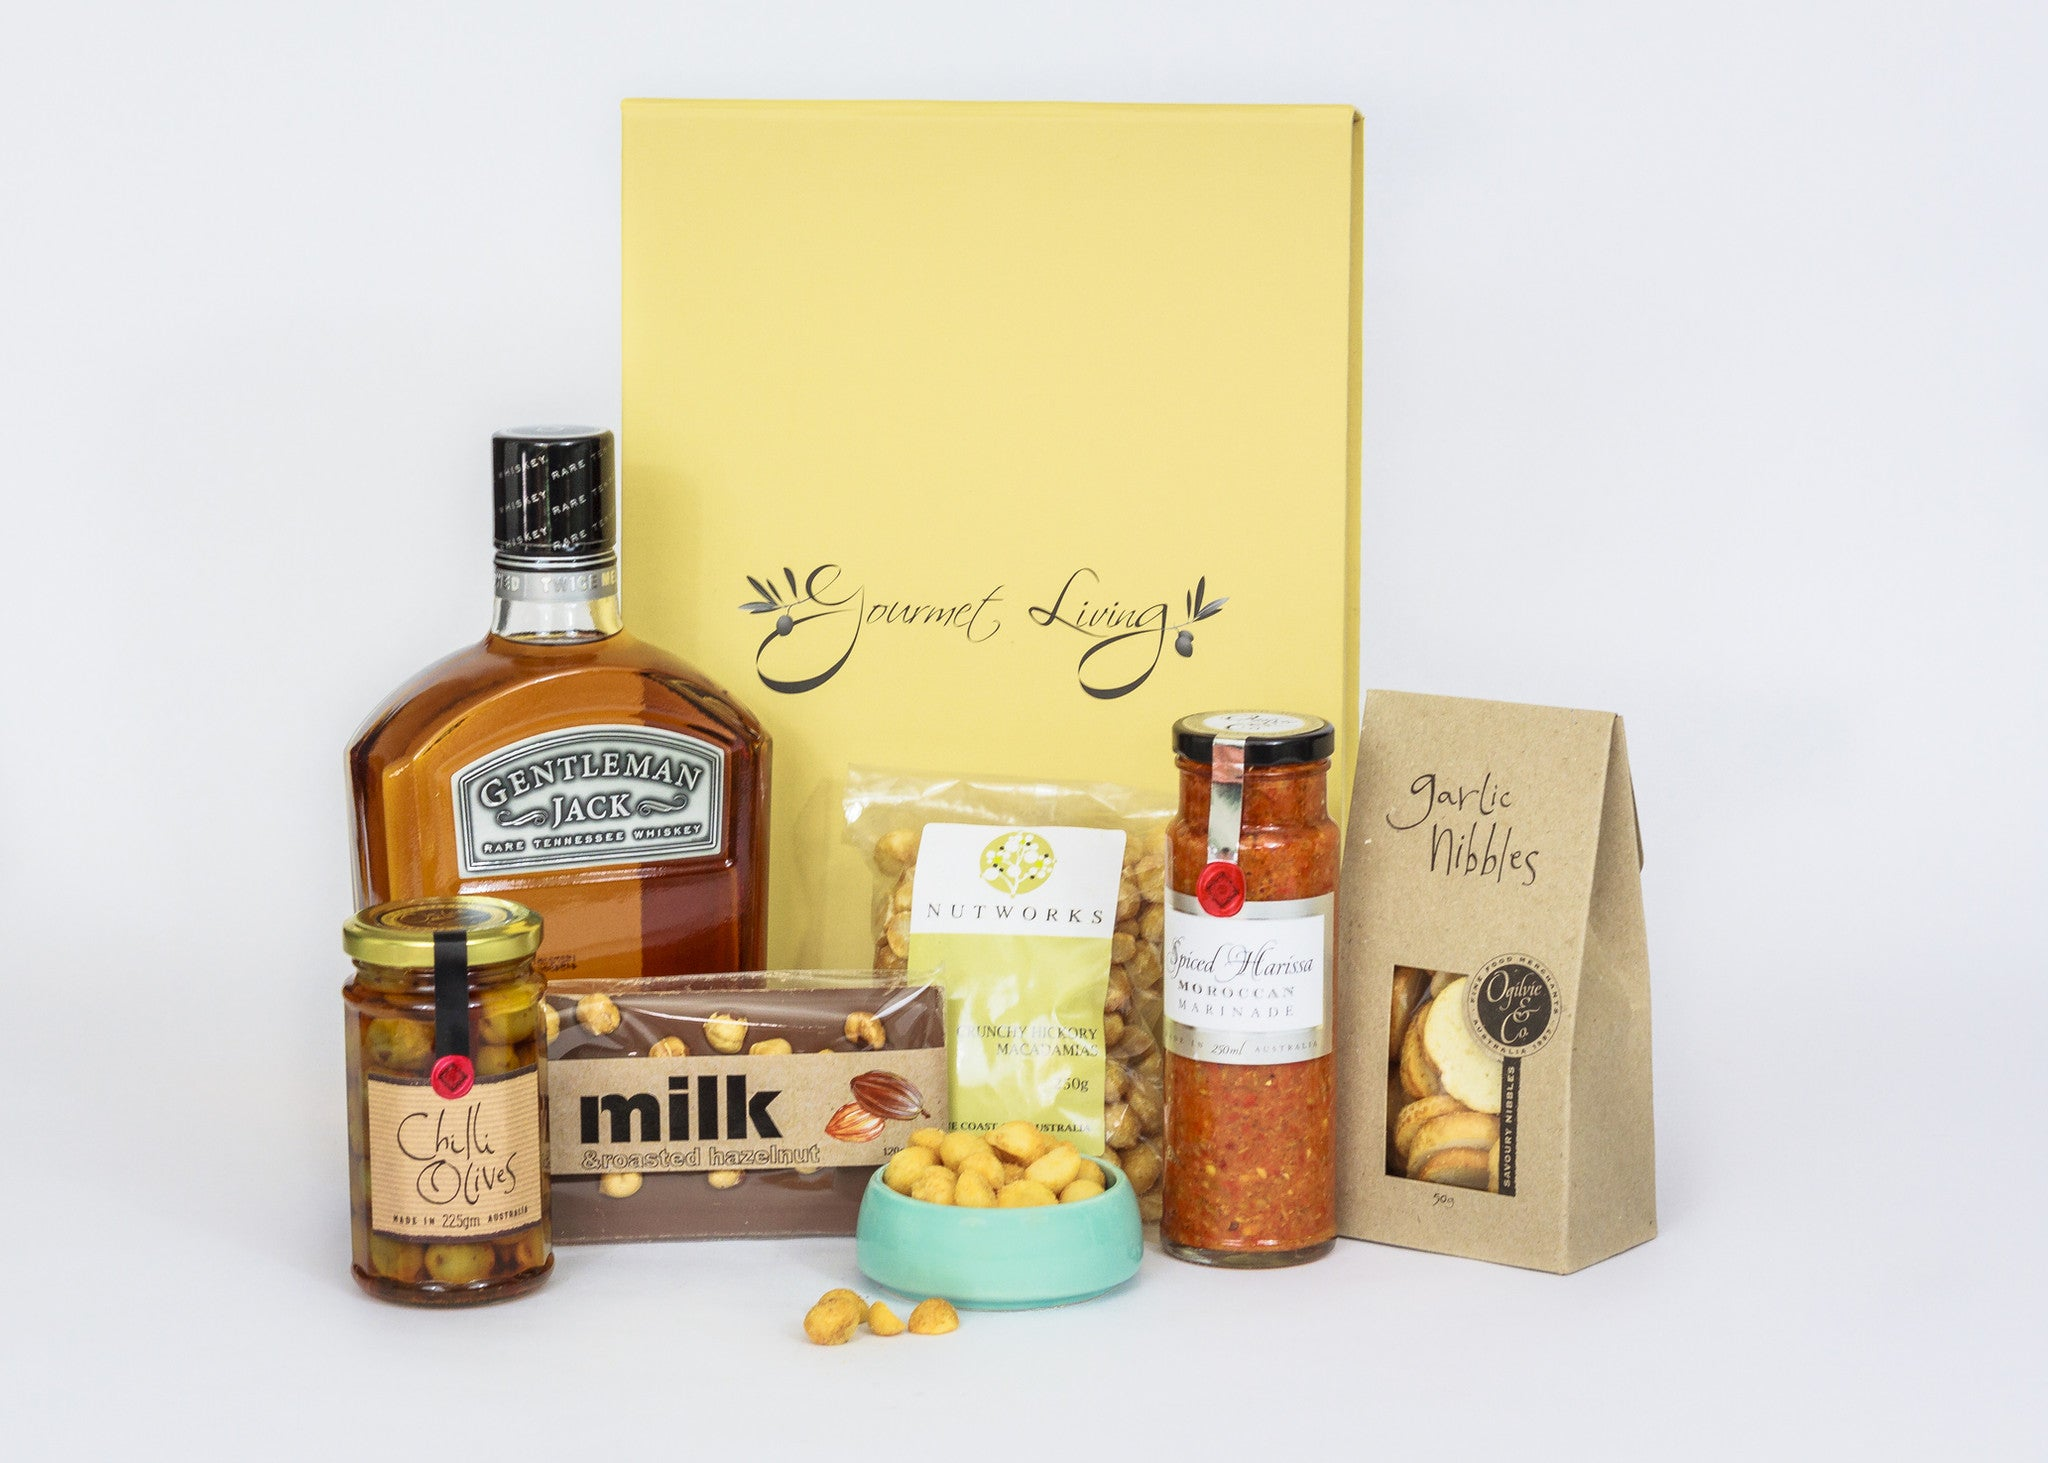 Gentlemen Jack Hamper